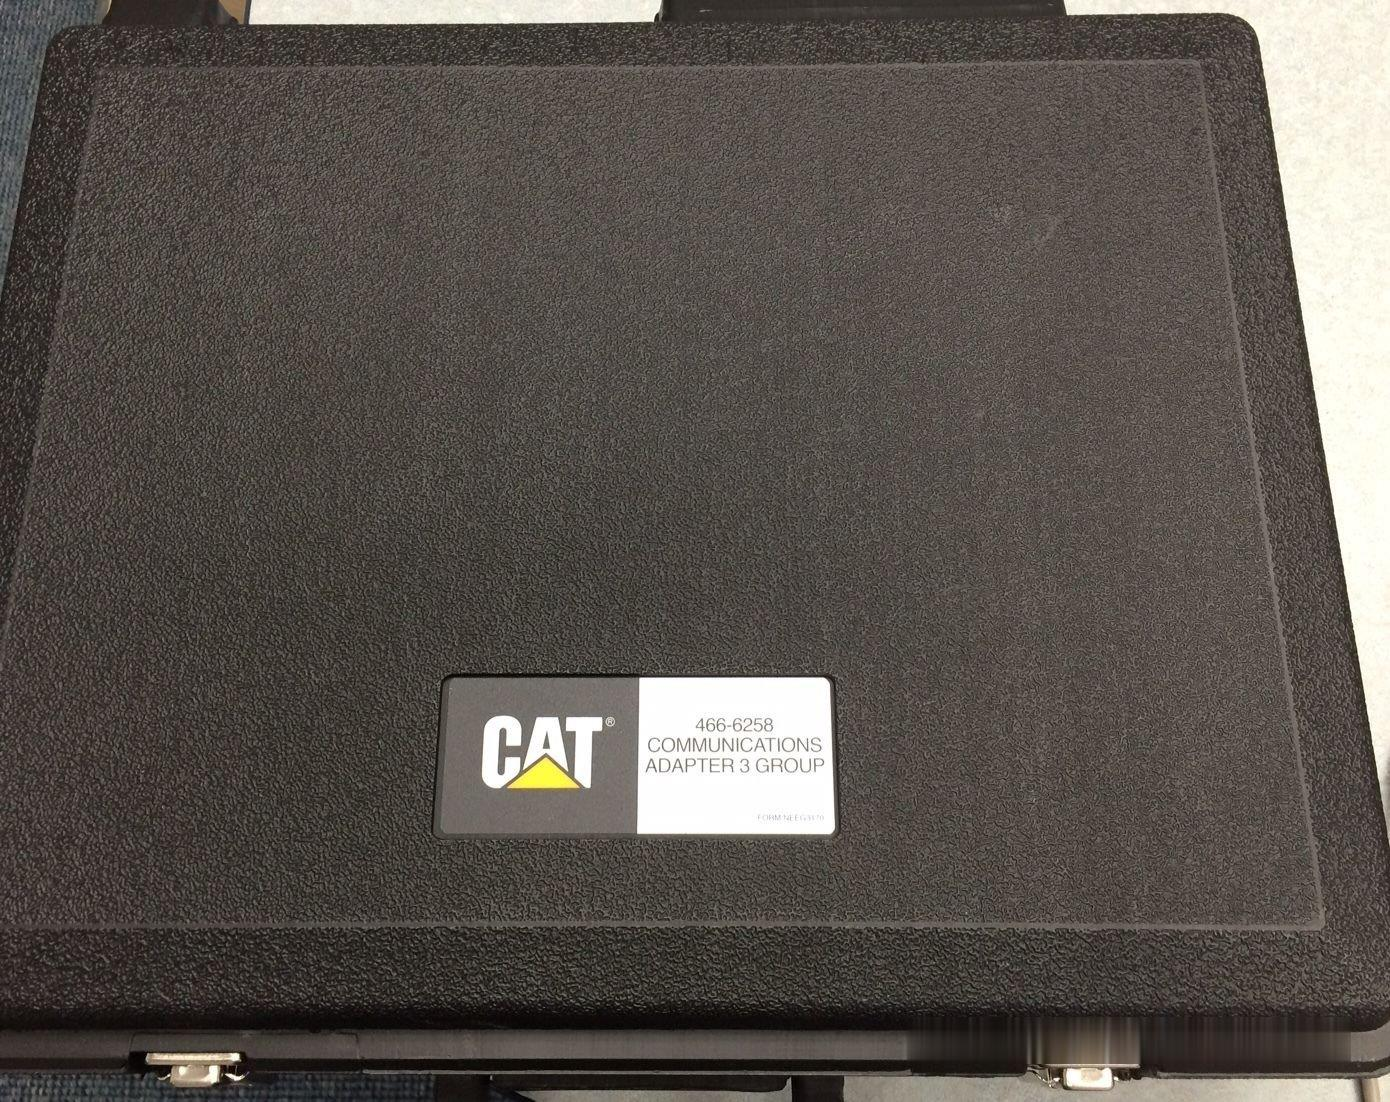 Caterpillar-Communication-Adapter-III-Kit-1 (2)